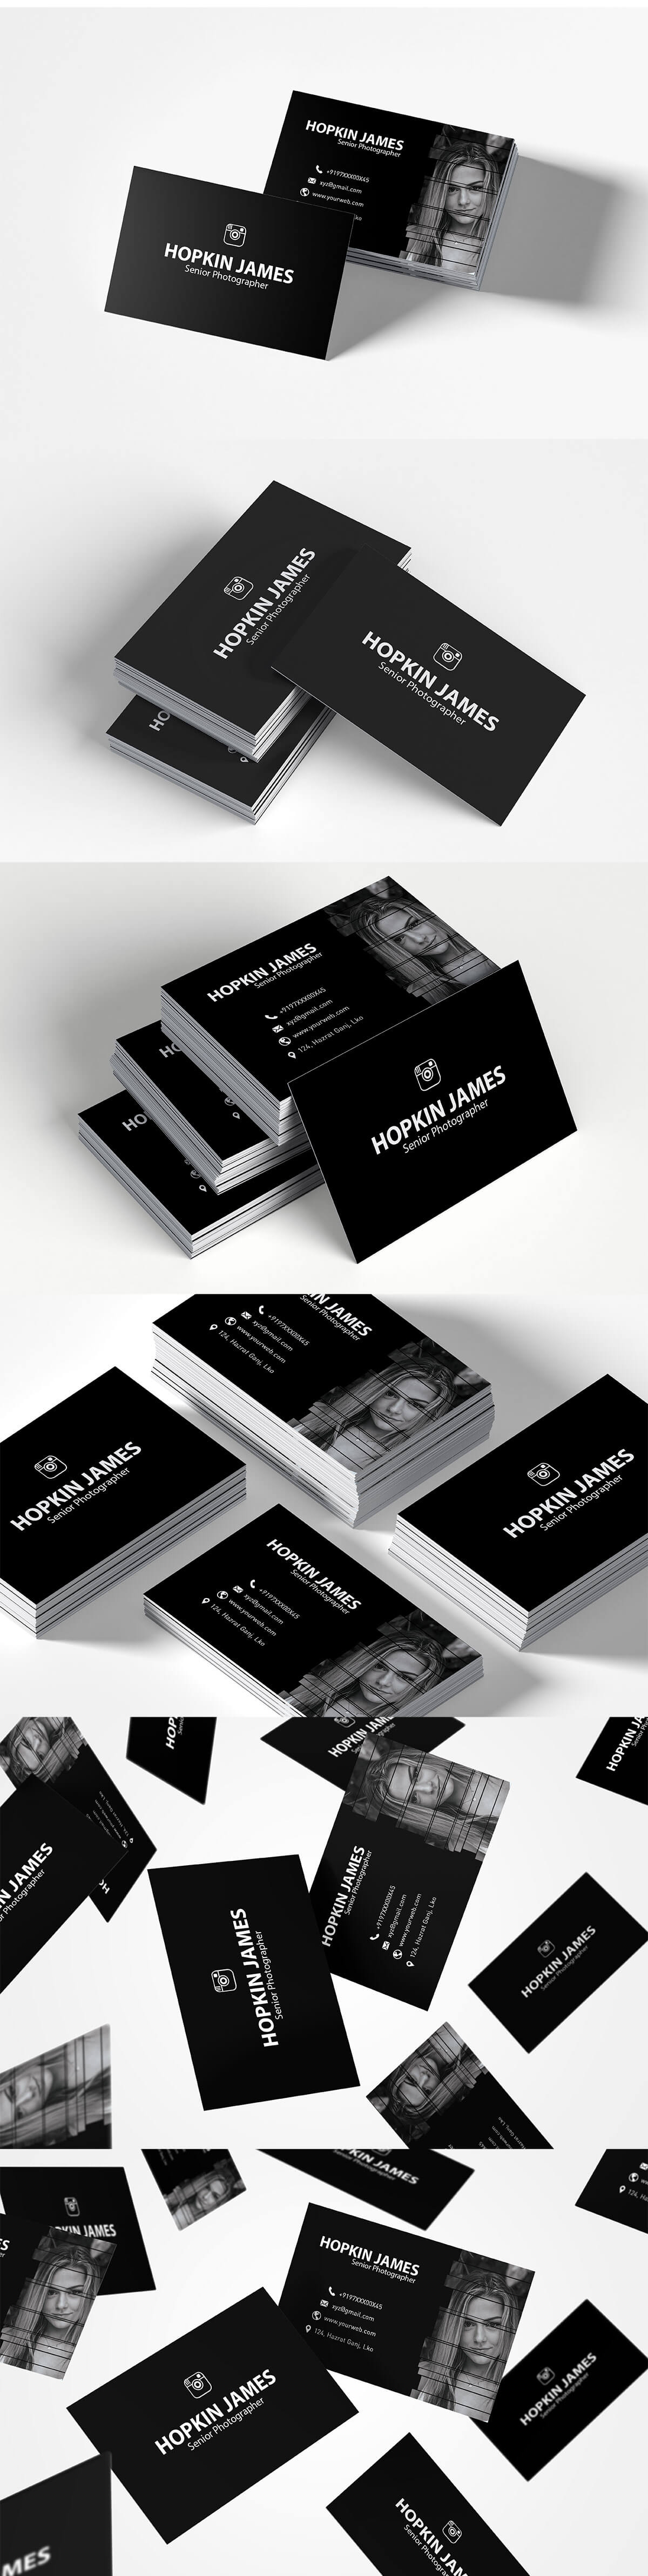 Free Corporate Photography Business Card Feature Image 1